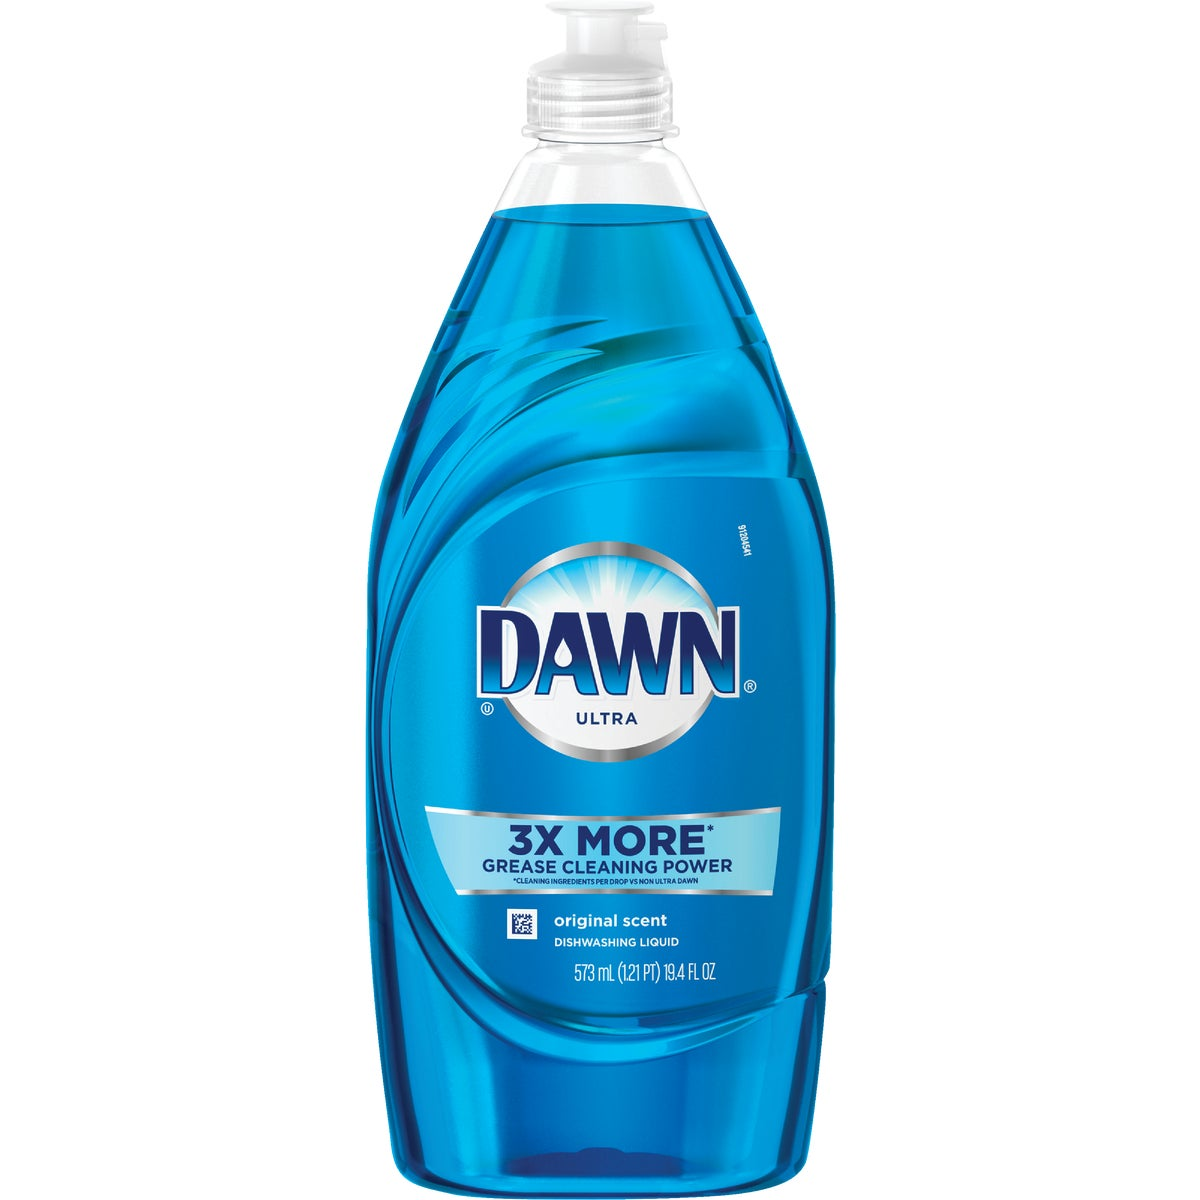 24OZ ORIG DAWN DISH SOAP - 22205 by Procter & Gamble